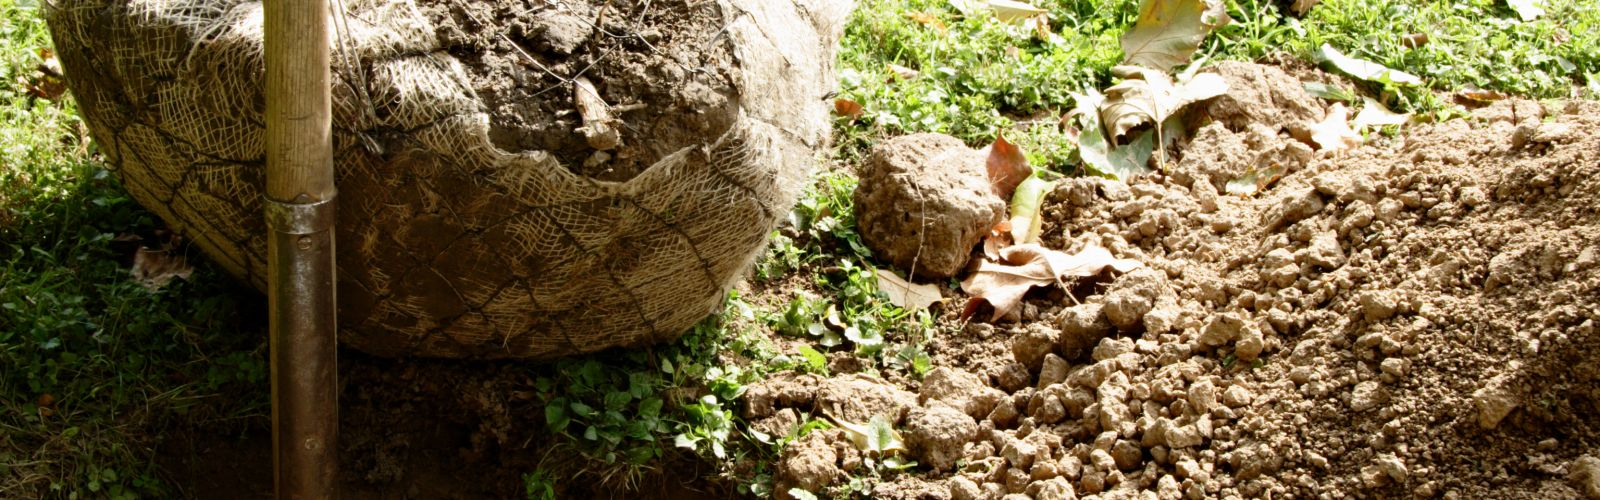 tree root ball next to hole in the ground